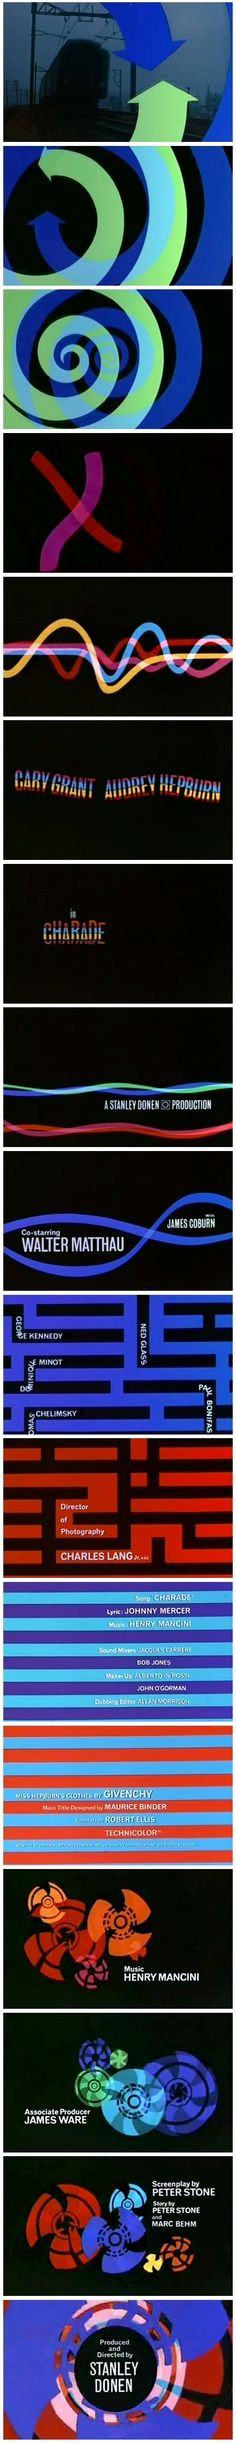 "Titles by Maurice Binder (best known for his Bond Film title sequences, including the iconic gun barrel intro) from ""Charade"" (dir. Stanley Donen, 1963)."